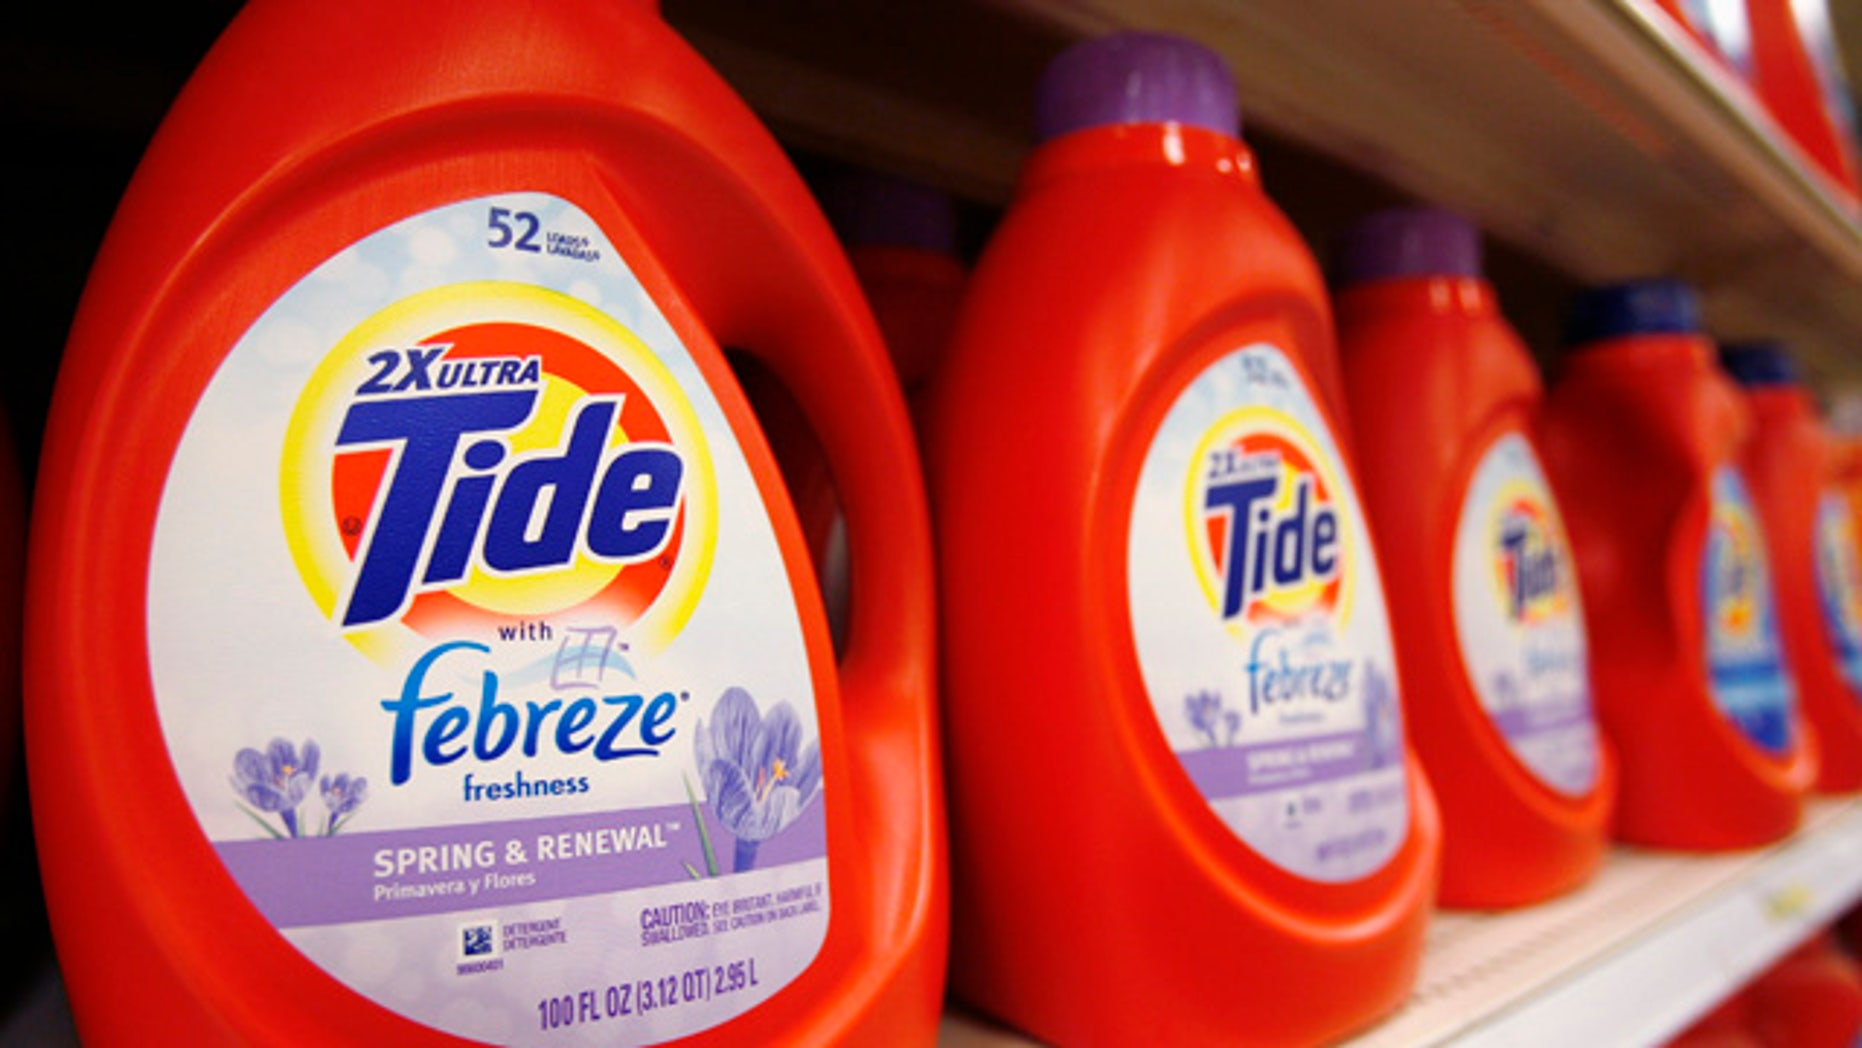 FILE: Tide detergent, a Procter & Gamble product, is displayed on a shelf in a store in Alexandria.